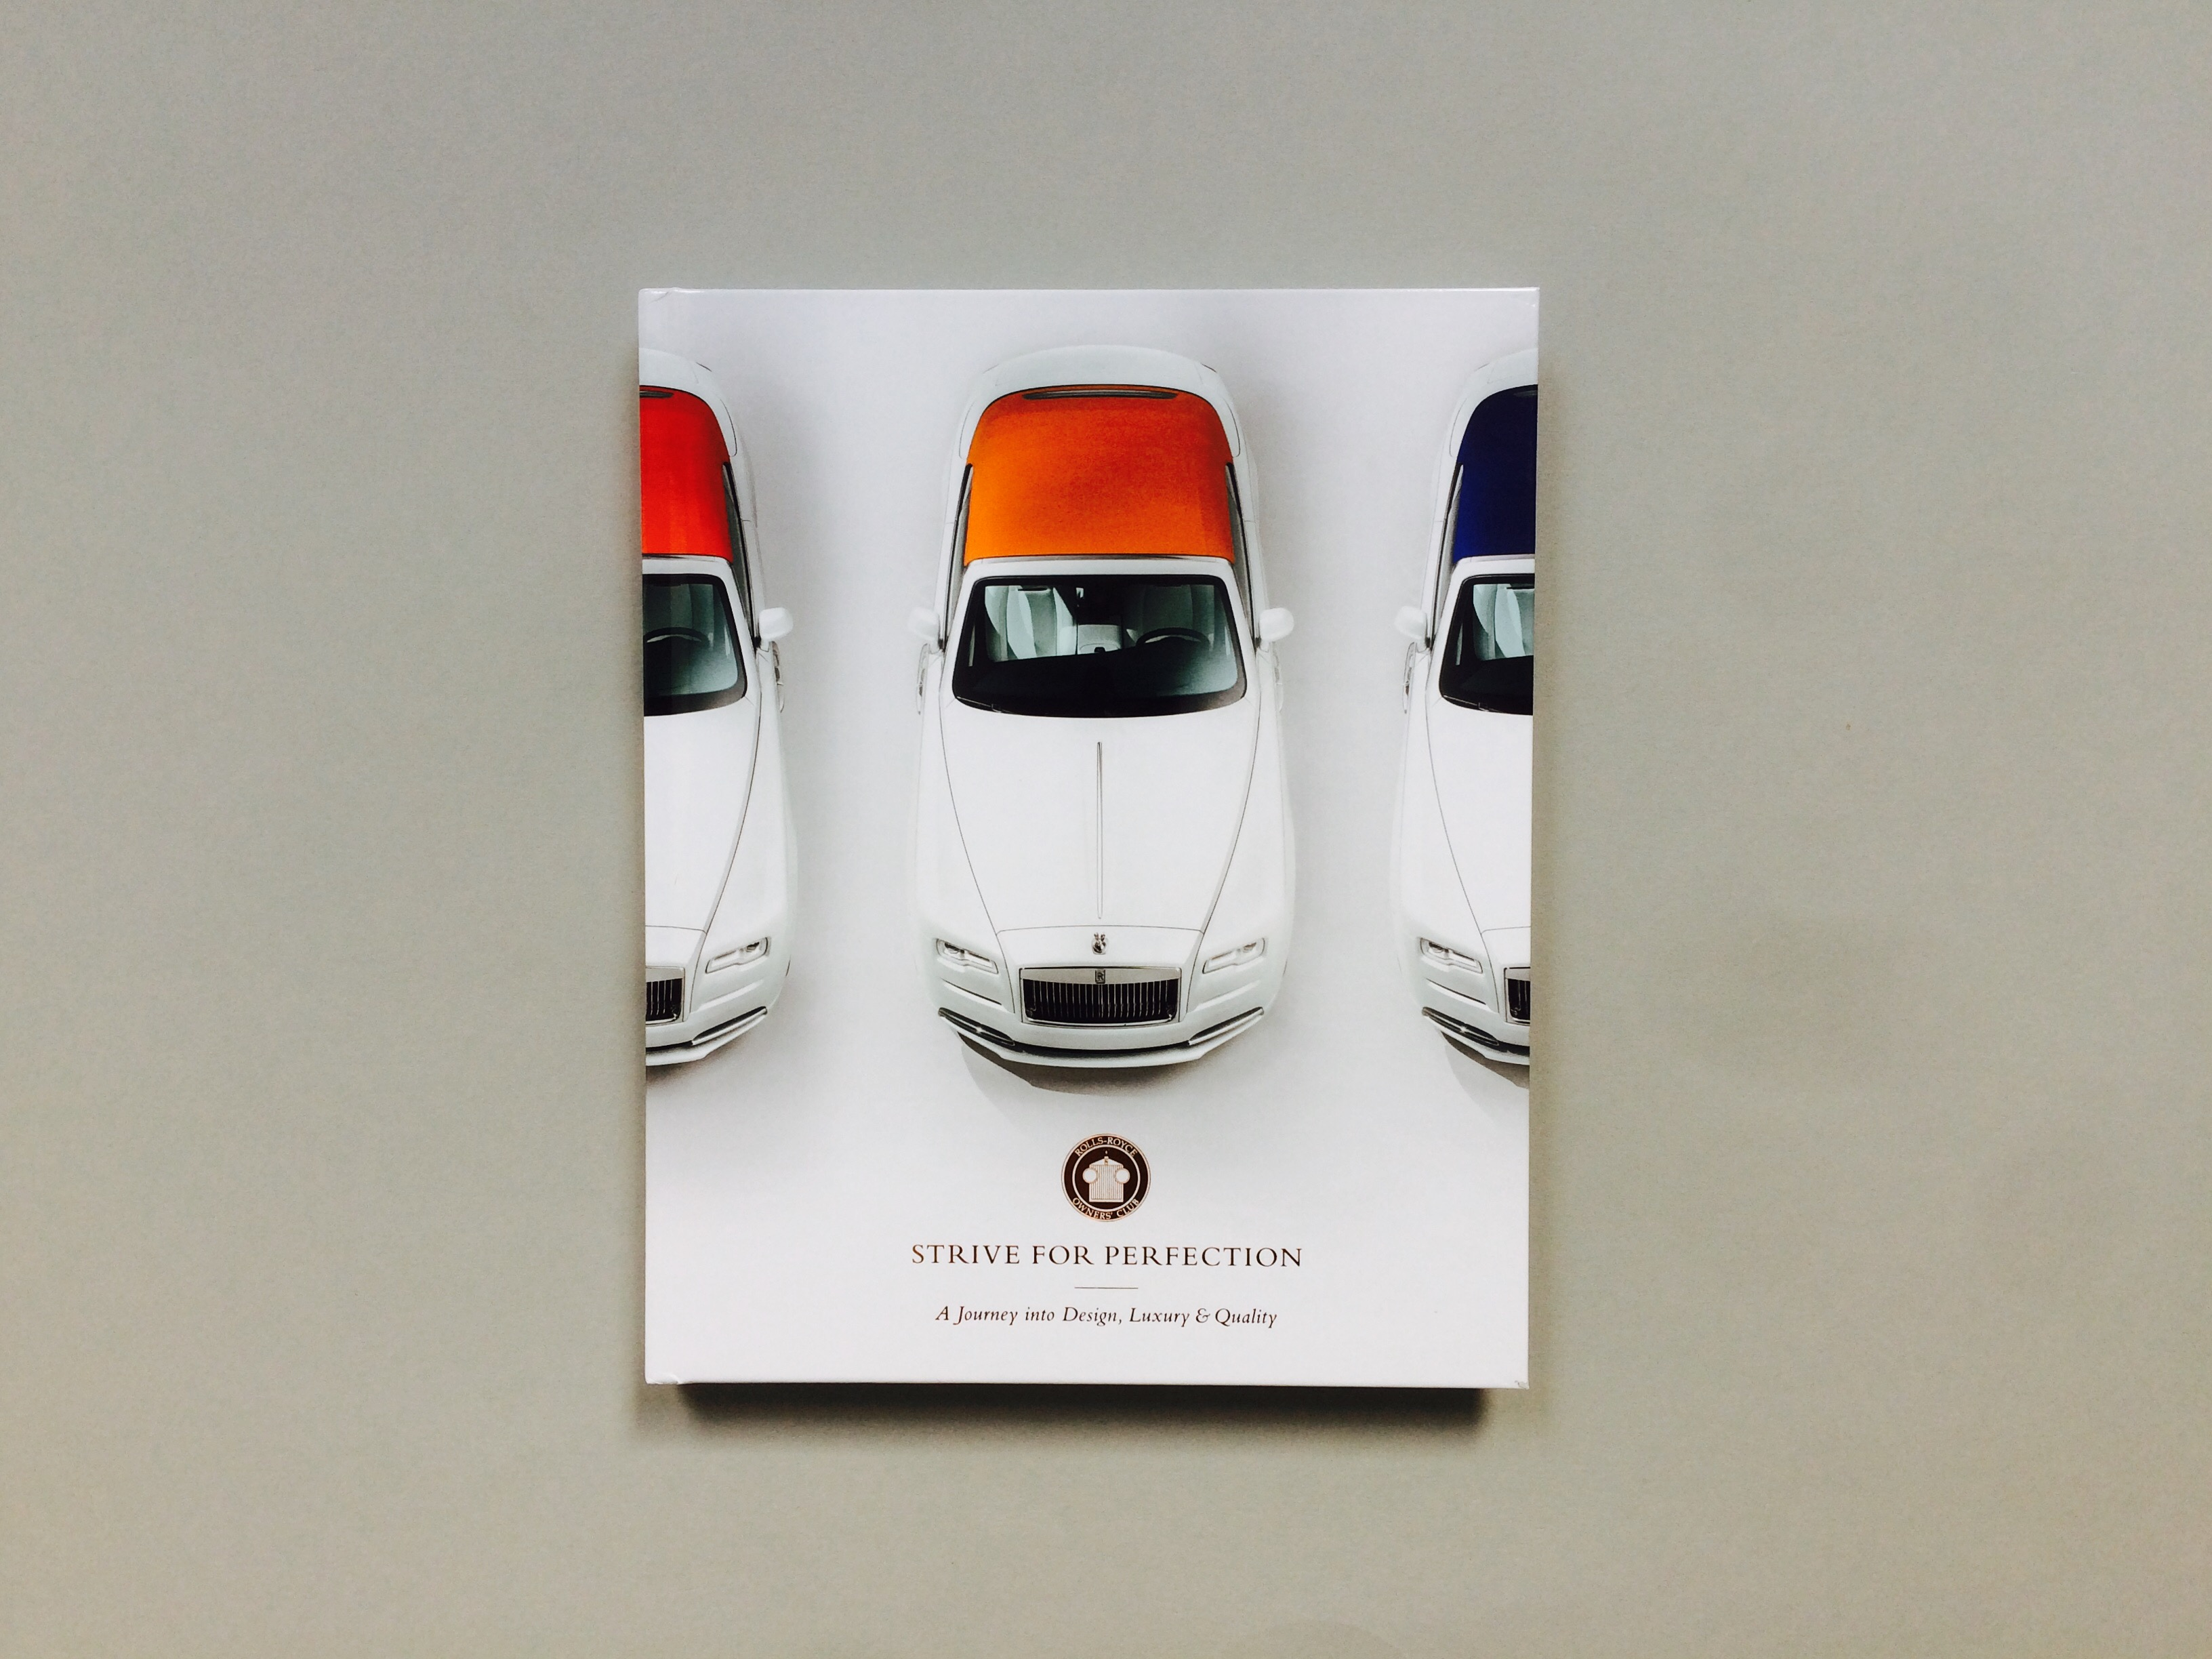 Rolls Royce Owners' Club commemorative book